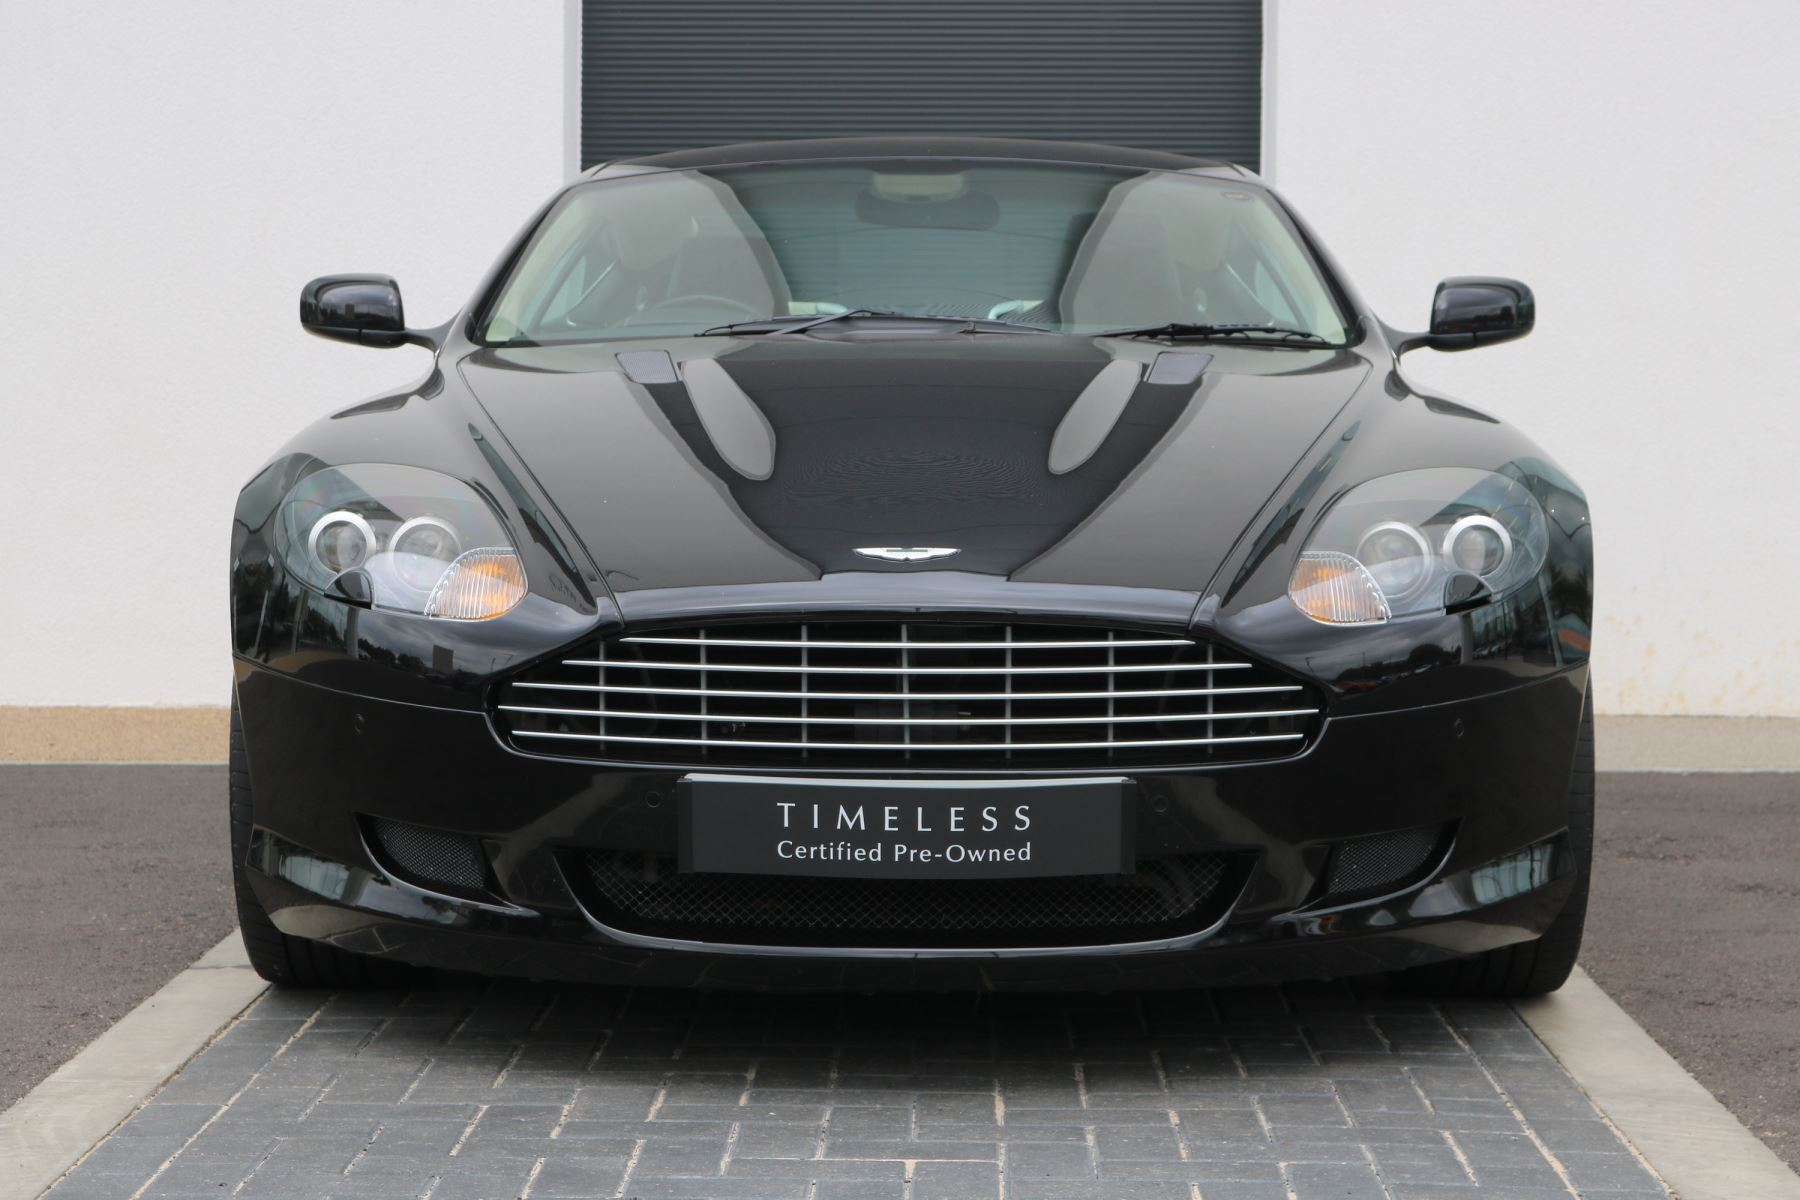 Aston Martin DB9 V12 2dr Touchtronic [470] 5.9 Automatic Coupe (2009) image